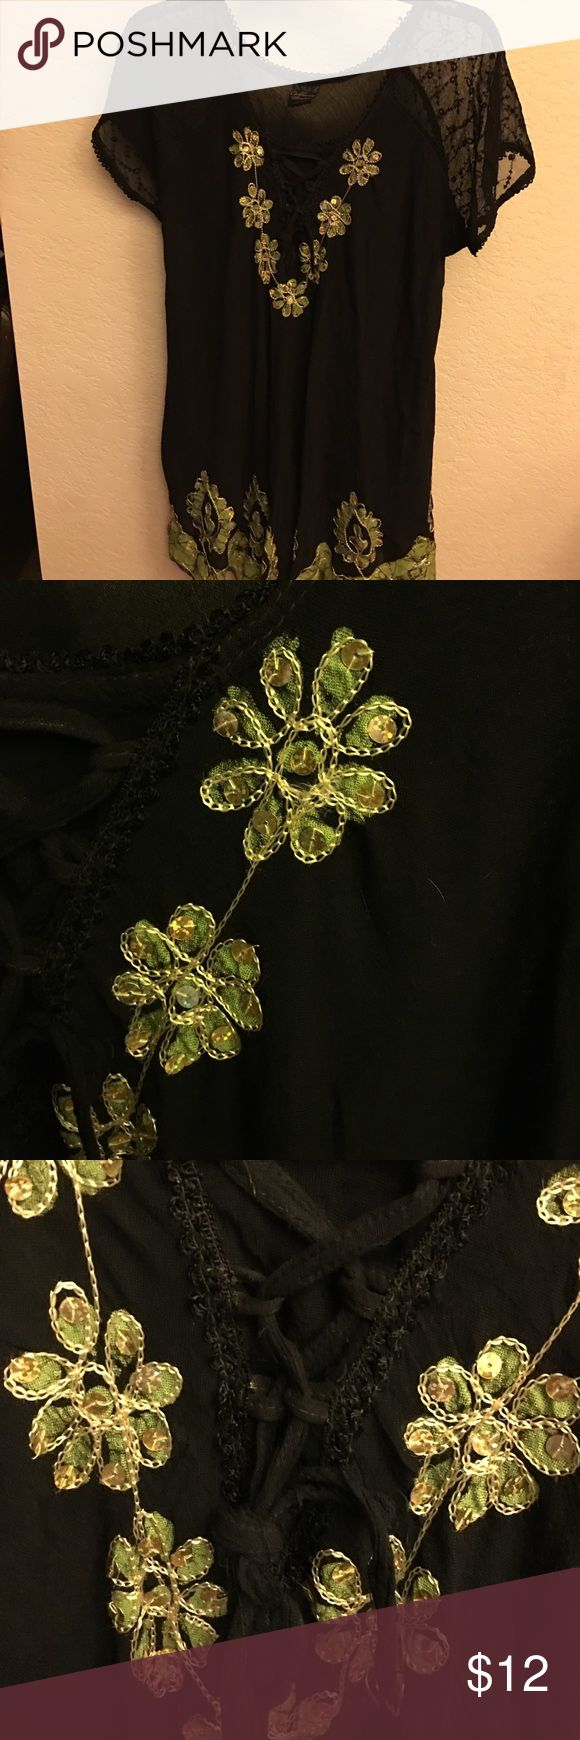 💫BNWOT TUNIC TOP💫 Never worn, stunning tunic, green beads, gold and green embroidery, sheer black lace on sleeves, very lightweight, great as tunic or coverup or even a mini if short. Hangs 301/2 inches from shoulder to bottom of hem 😊 California Woman Tops Tunics